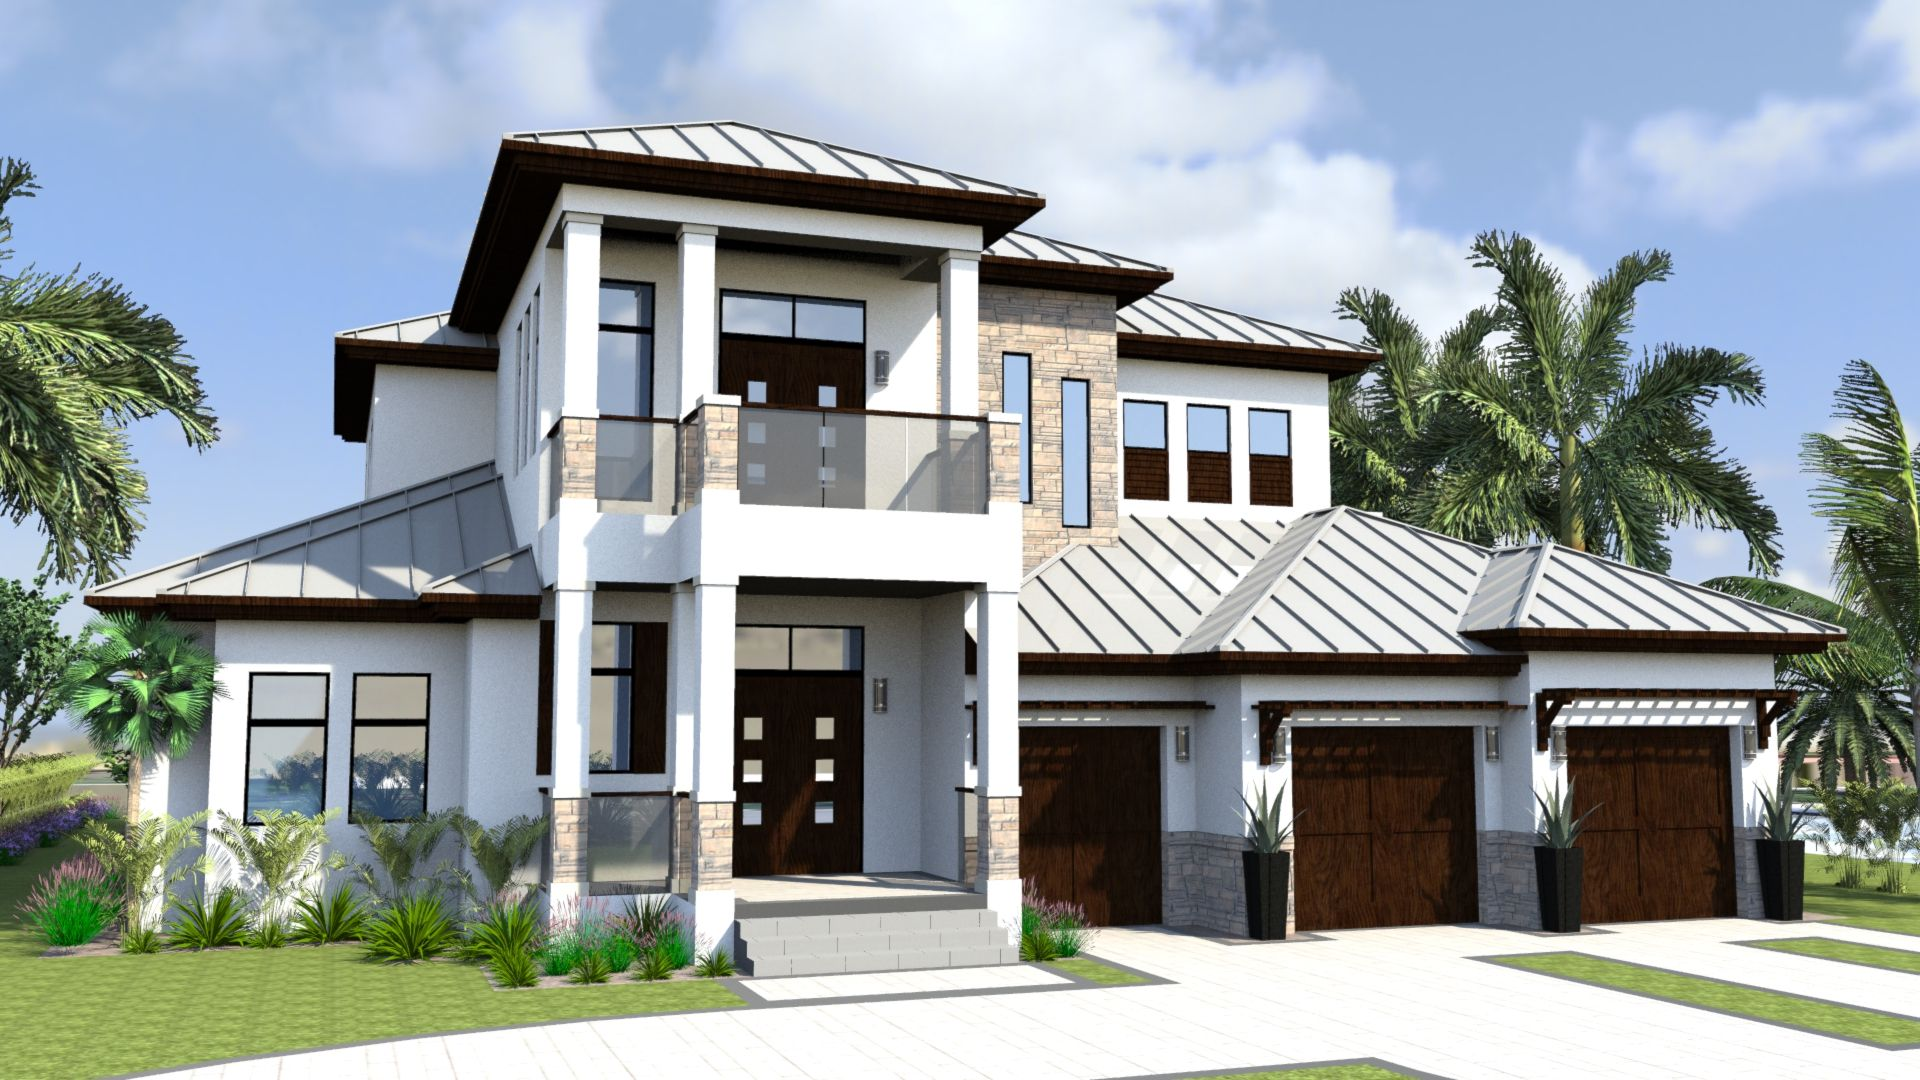 Florida west indies home plans pictures.